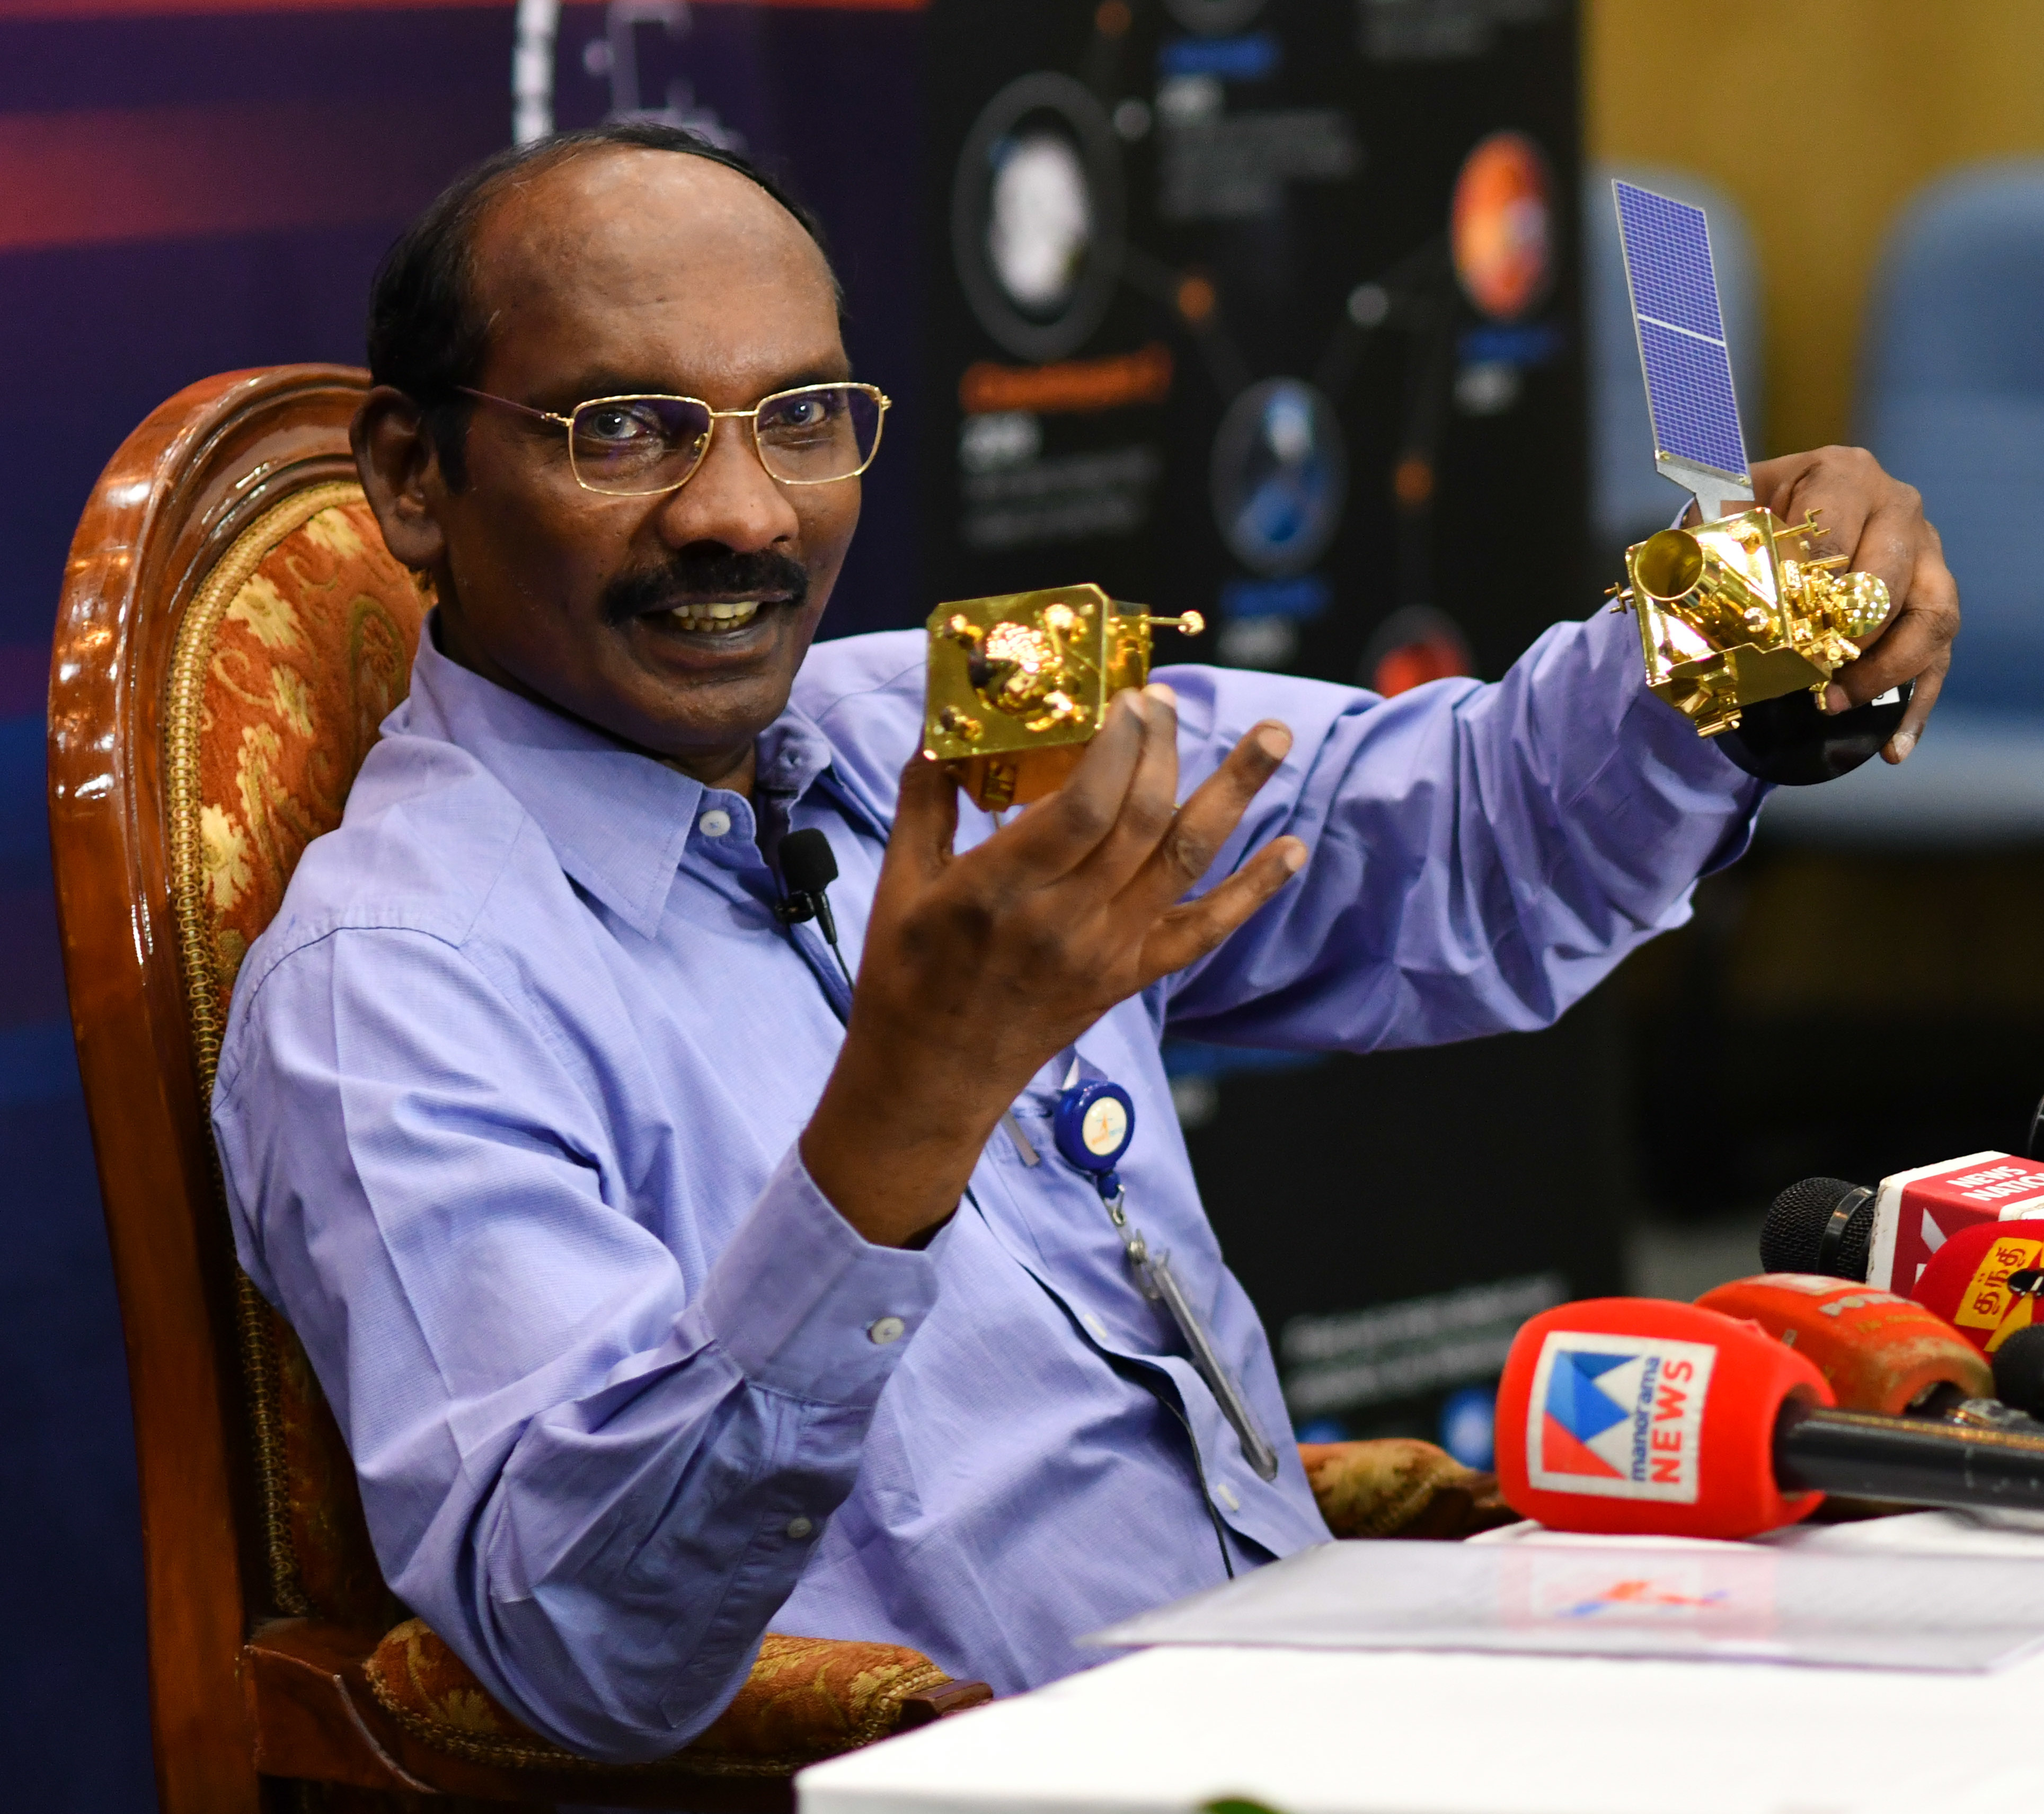 The_Chairman,_Indian_Space_Research_Organisation_(ISRO),_Dr._K._Sivan_addressing_a_press_conference_on_the_occasion_of_'Lunar_Orbit_Insertion_of_Chandrayaan-2_Mission',_in_Bengaluru_on_August_20,_2019_(crop